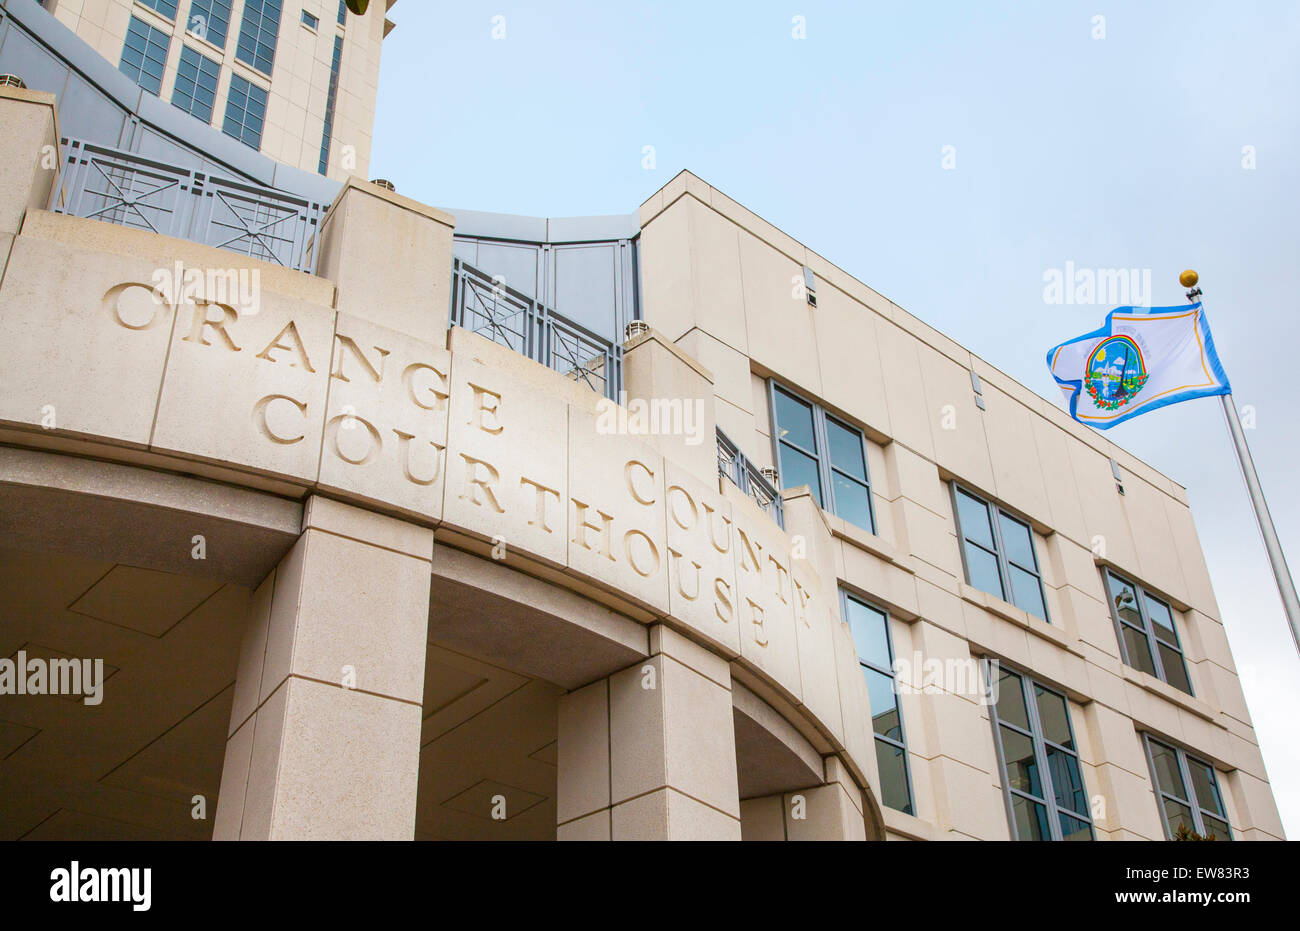 Orange County Courthouse building in downtown Orlando Florida - Stock Image